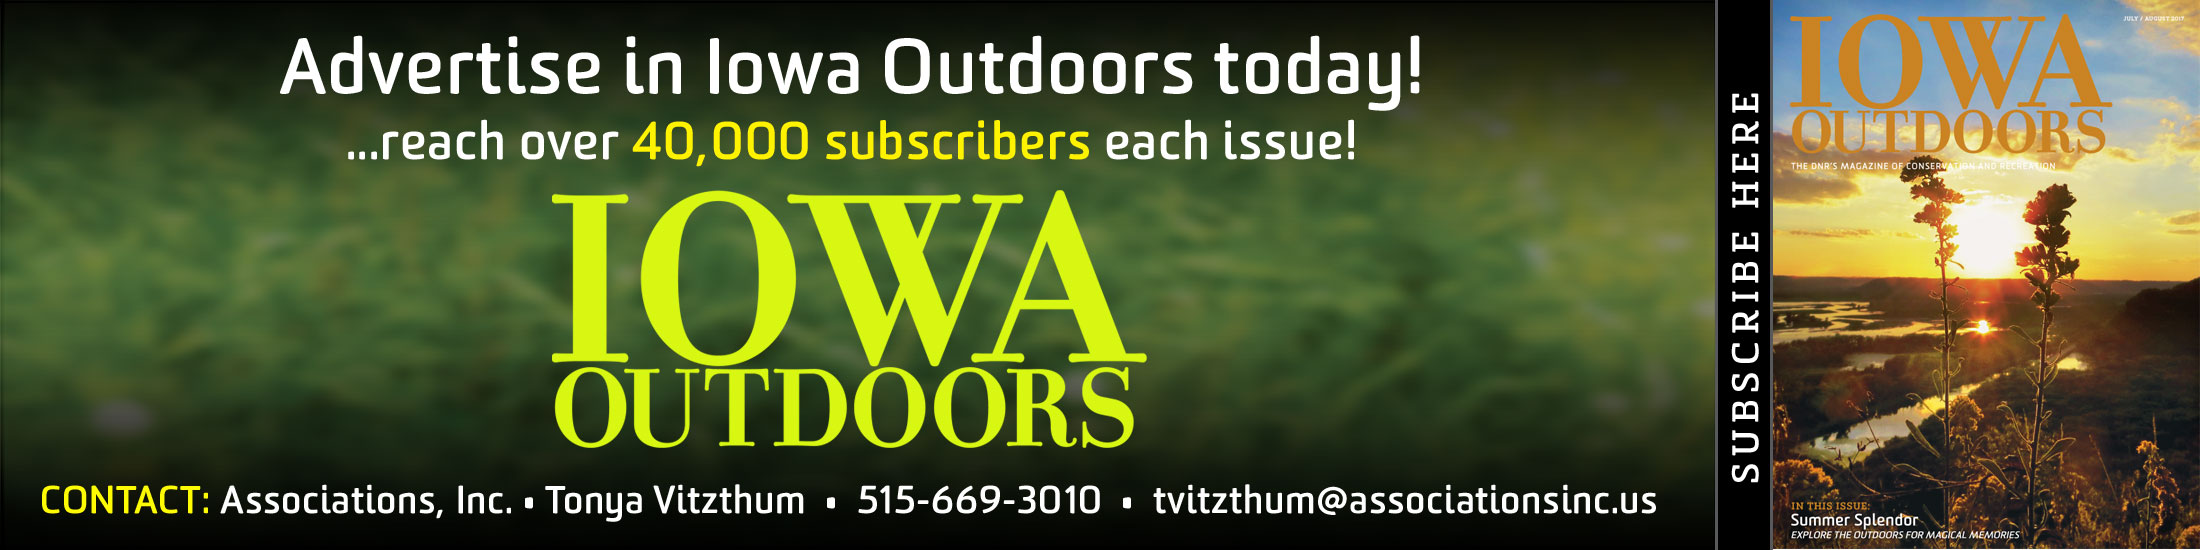 Iowa Outdoors Magazine, Advertising